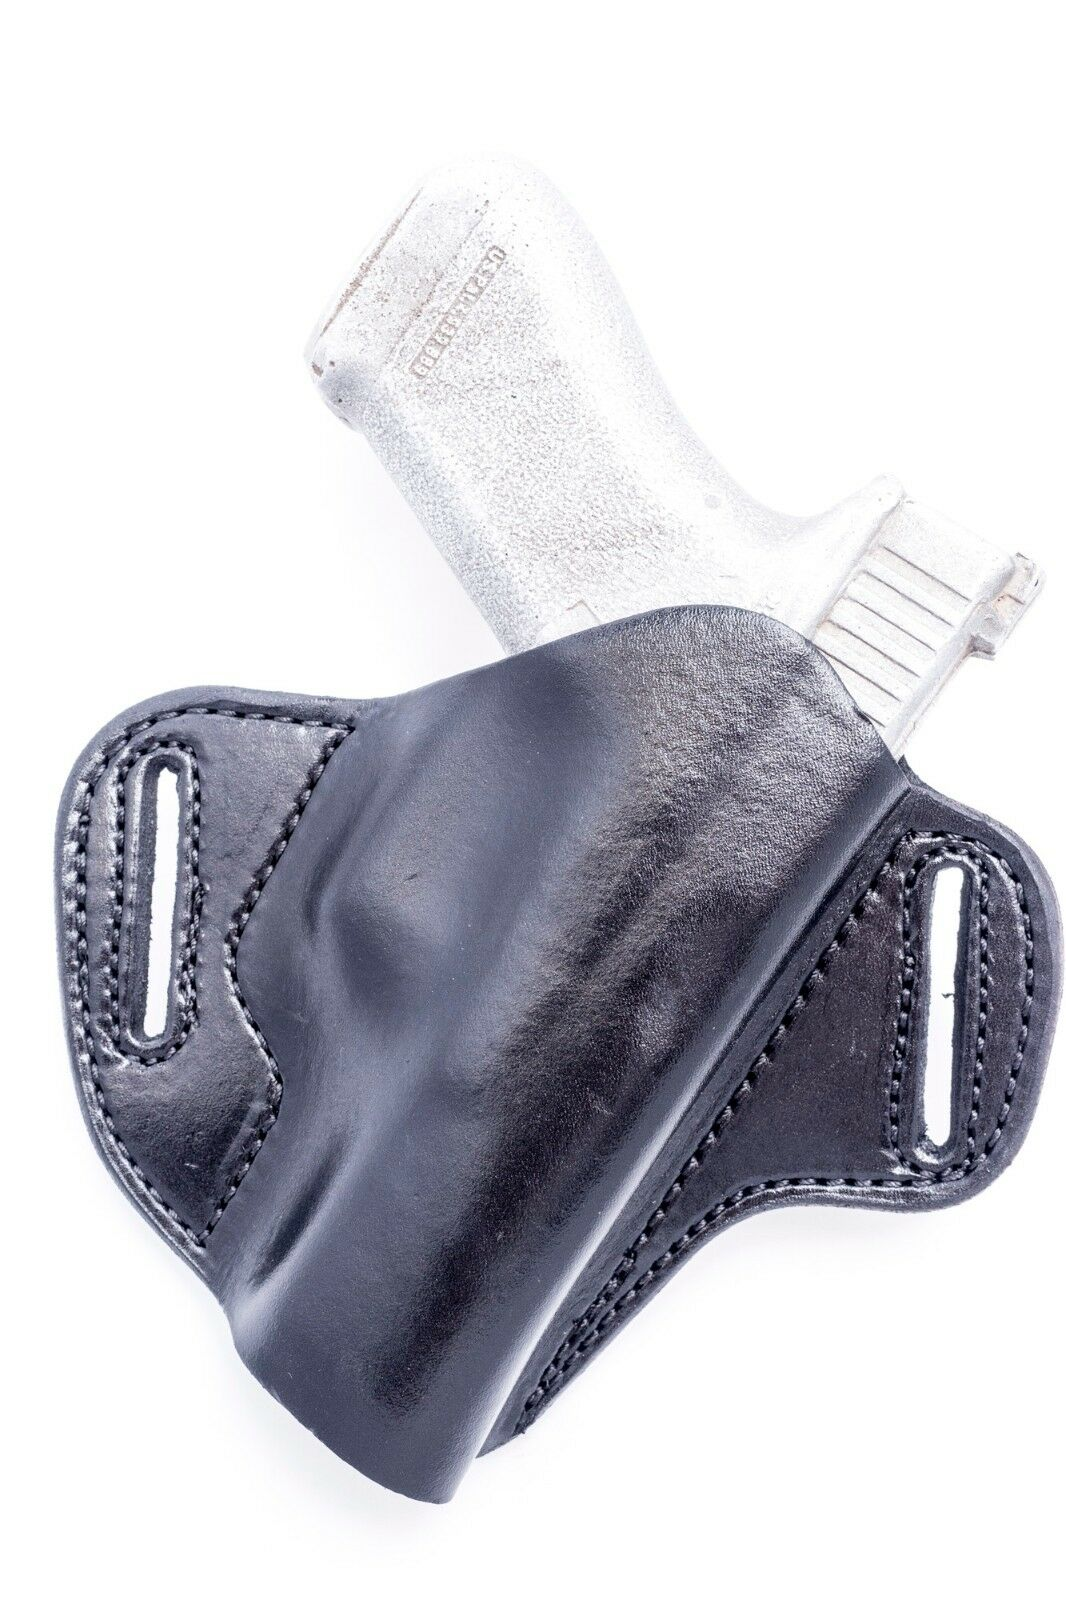 S&W M&P 9, 22, 40, 45, 357   Full Grain Leather OWB Pancake Holster. MADE IN USA